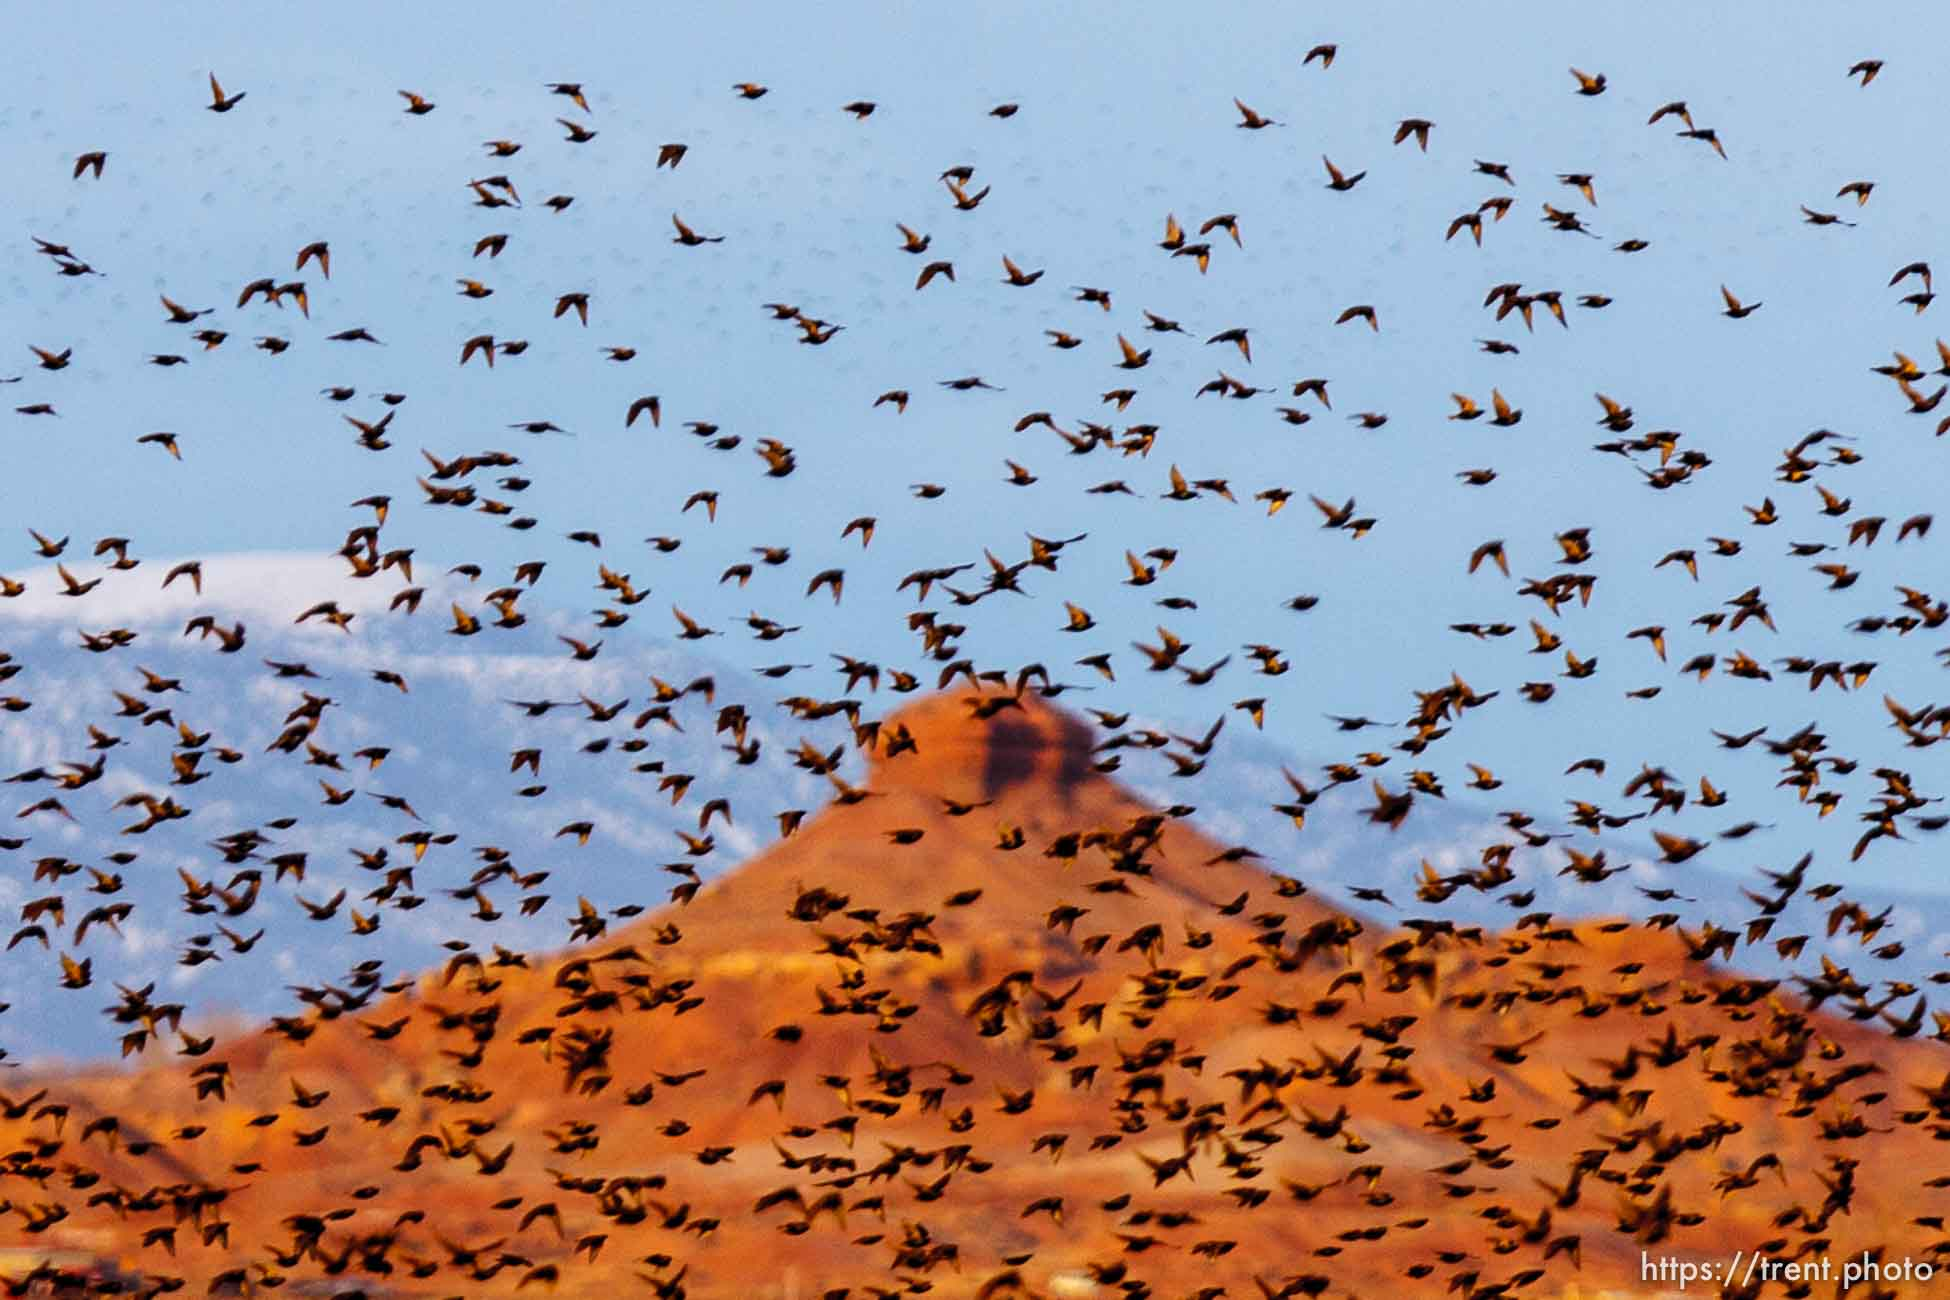 Huge flock of Starlings, Tuesday, February 21, 2012 in Roosevelt, Utah.